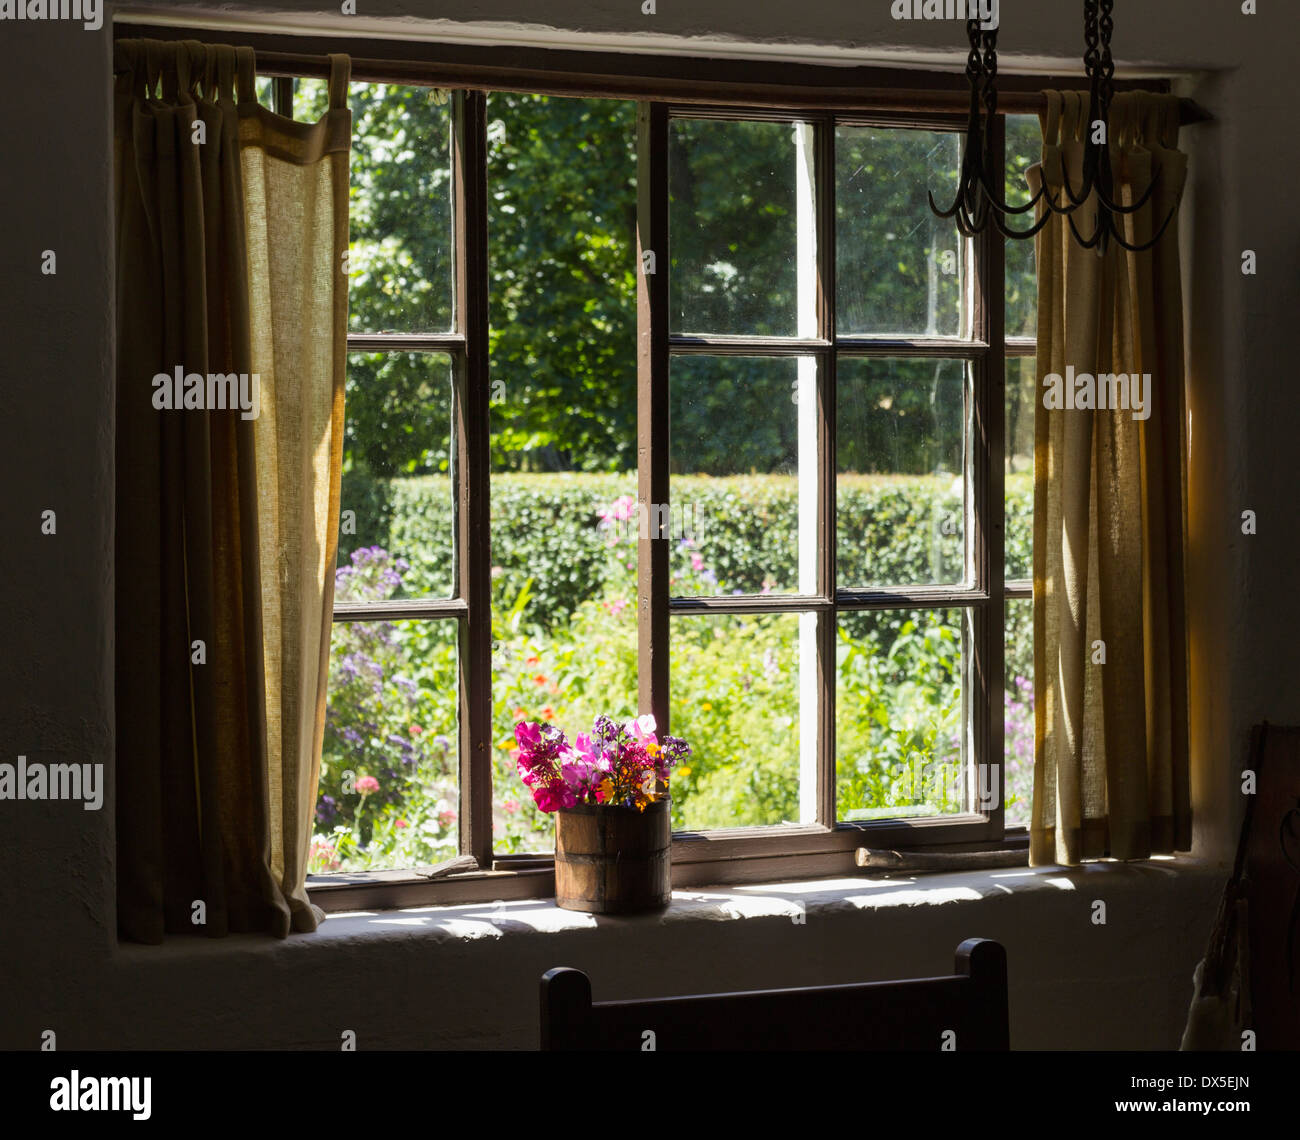 Cottage garden - View into a pretty country garden through a window in summer - Stock Image